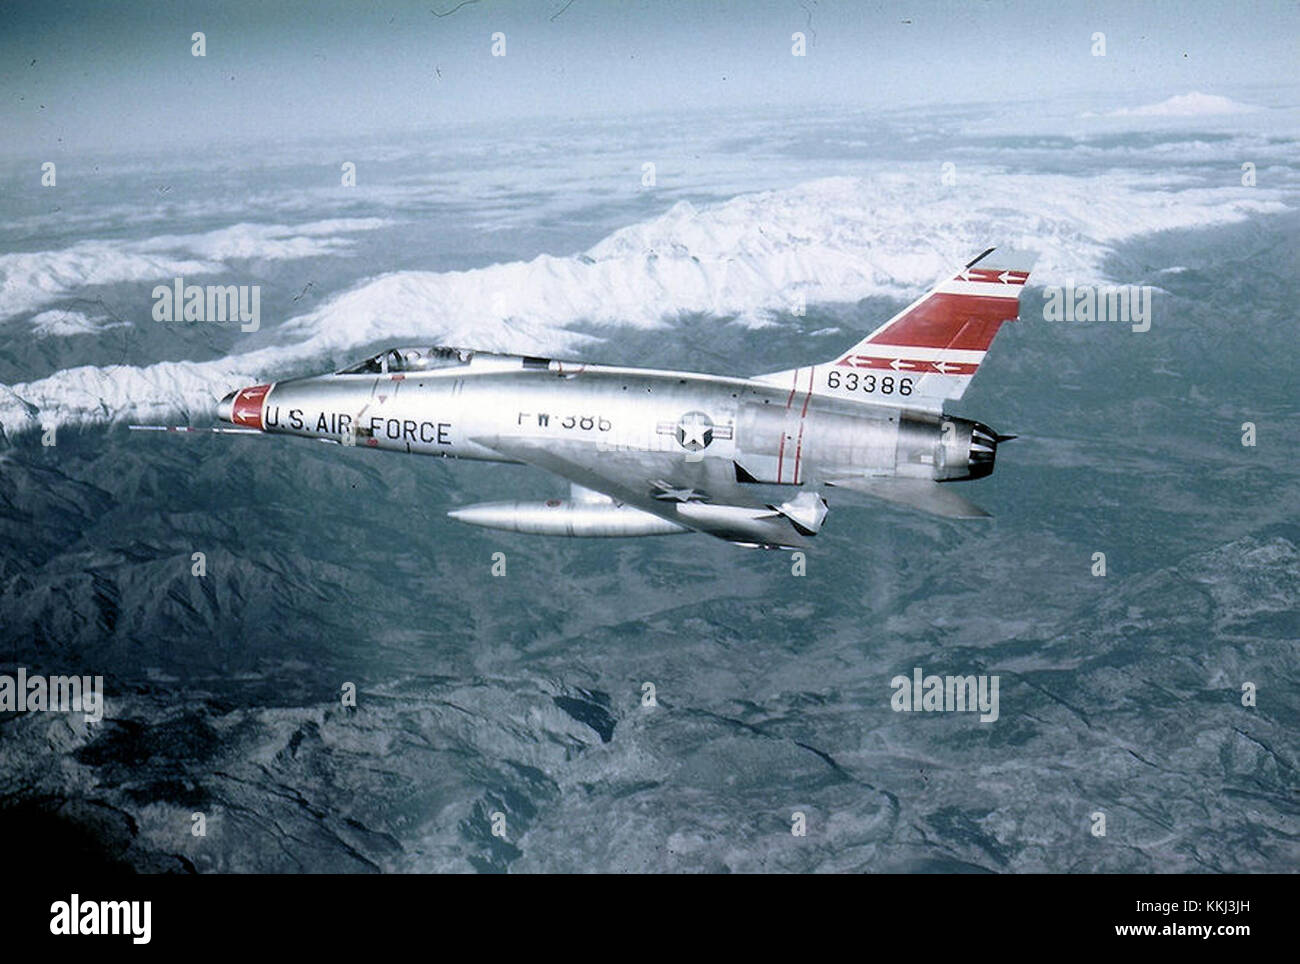 f-100-super-sabre-56-3386-353d-tfs-over-